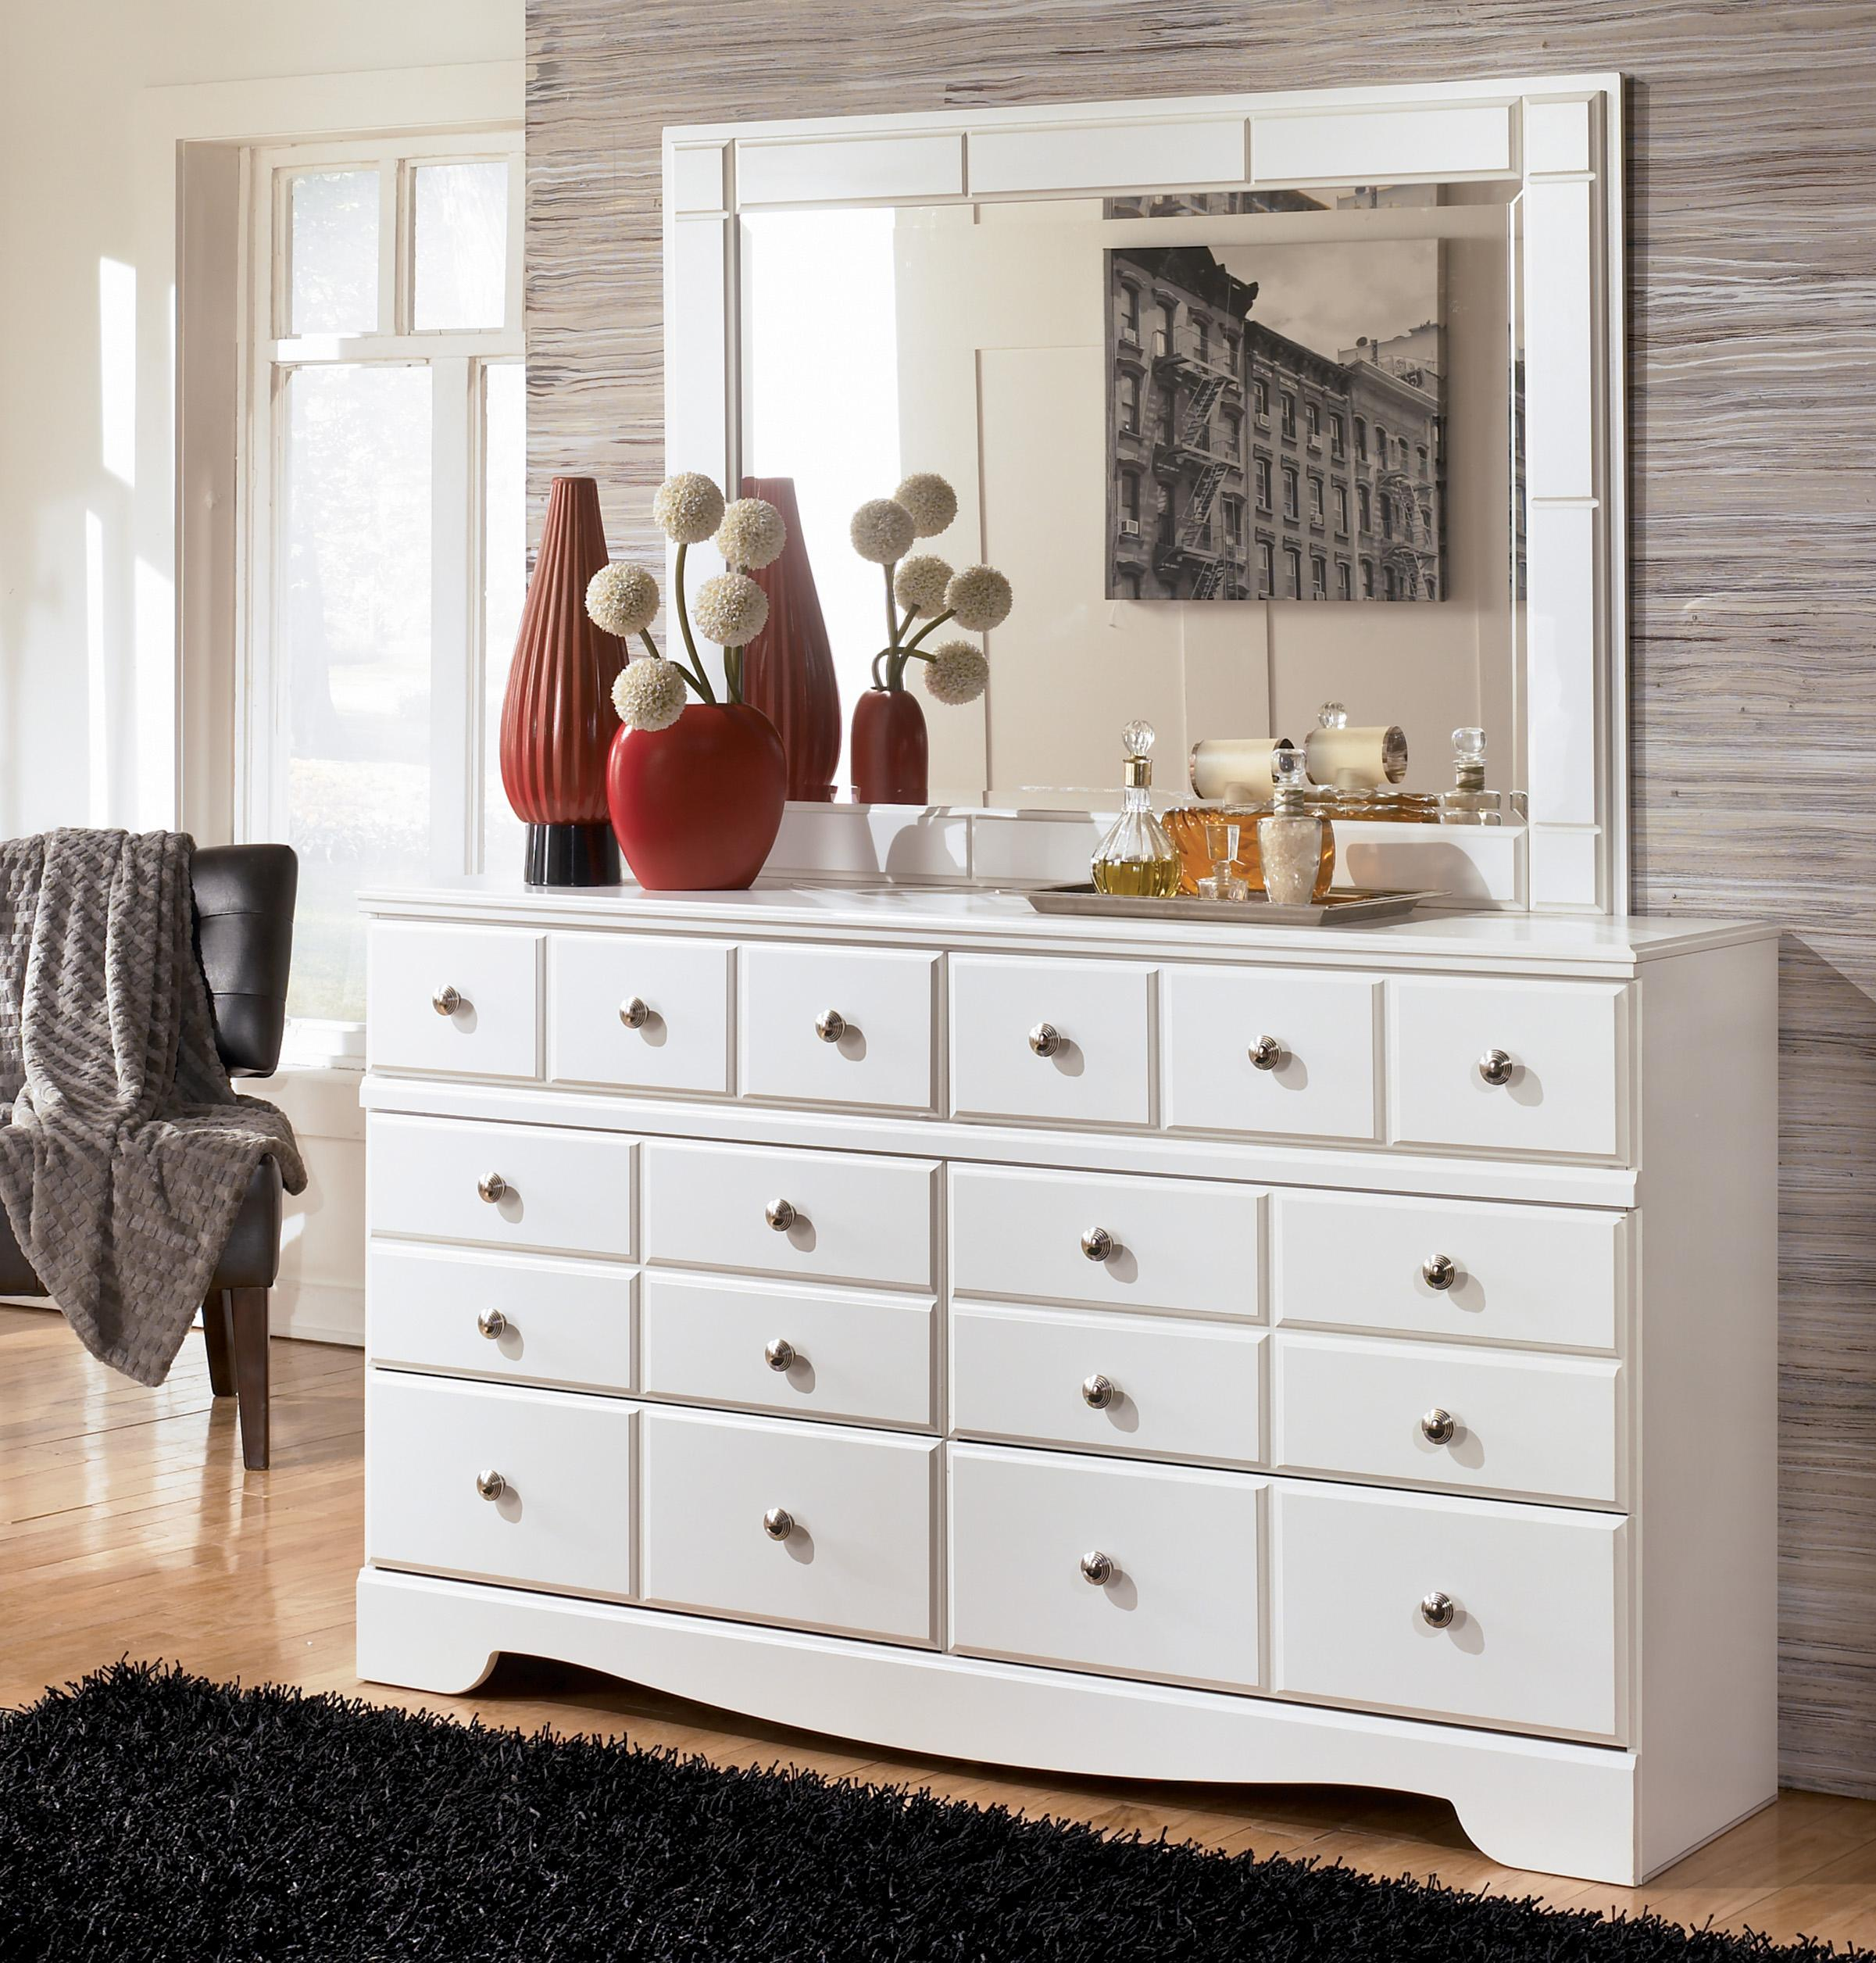 Signature Design by Ashley Weeki Contemporary 6 Drawer Dresser and